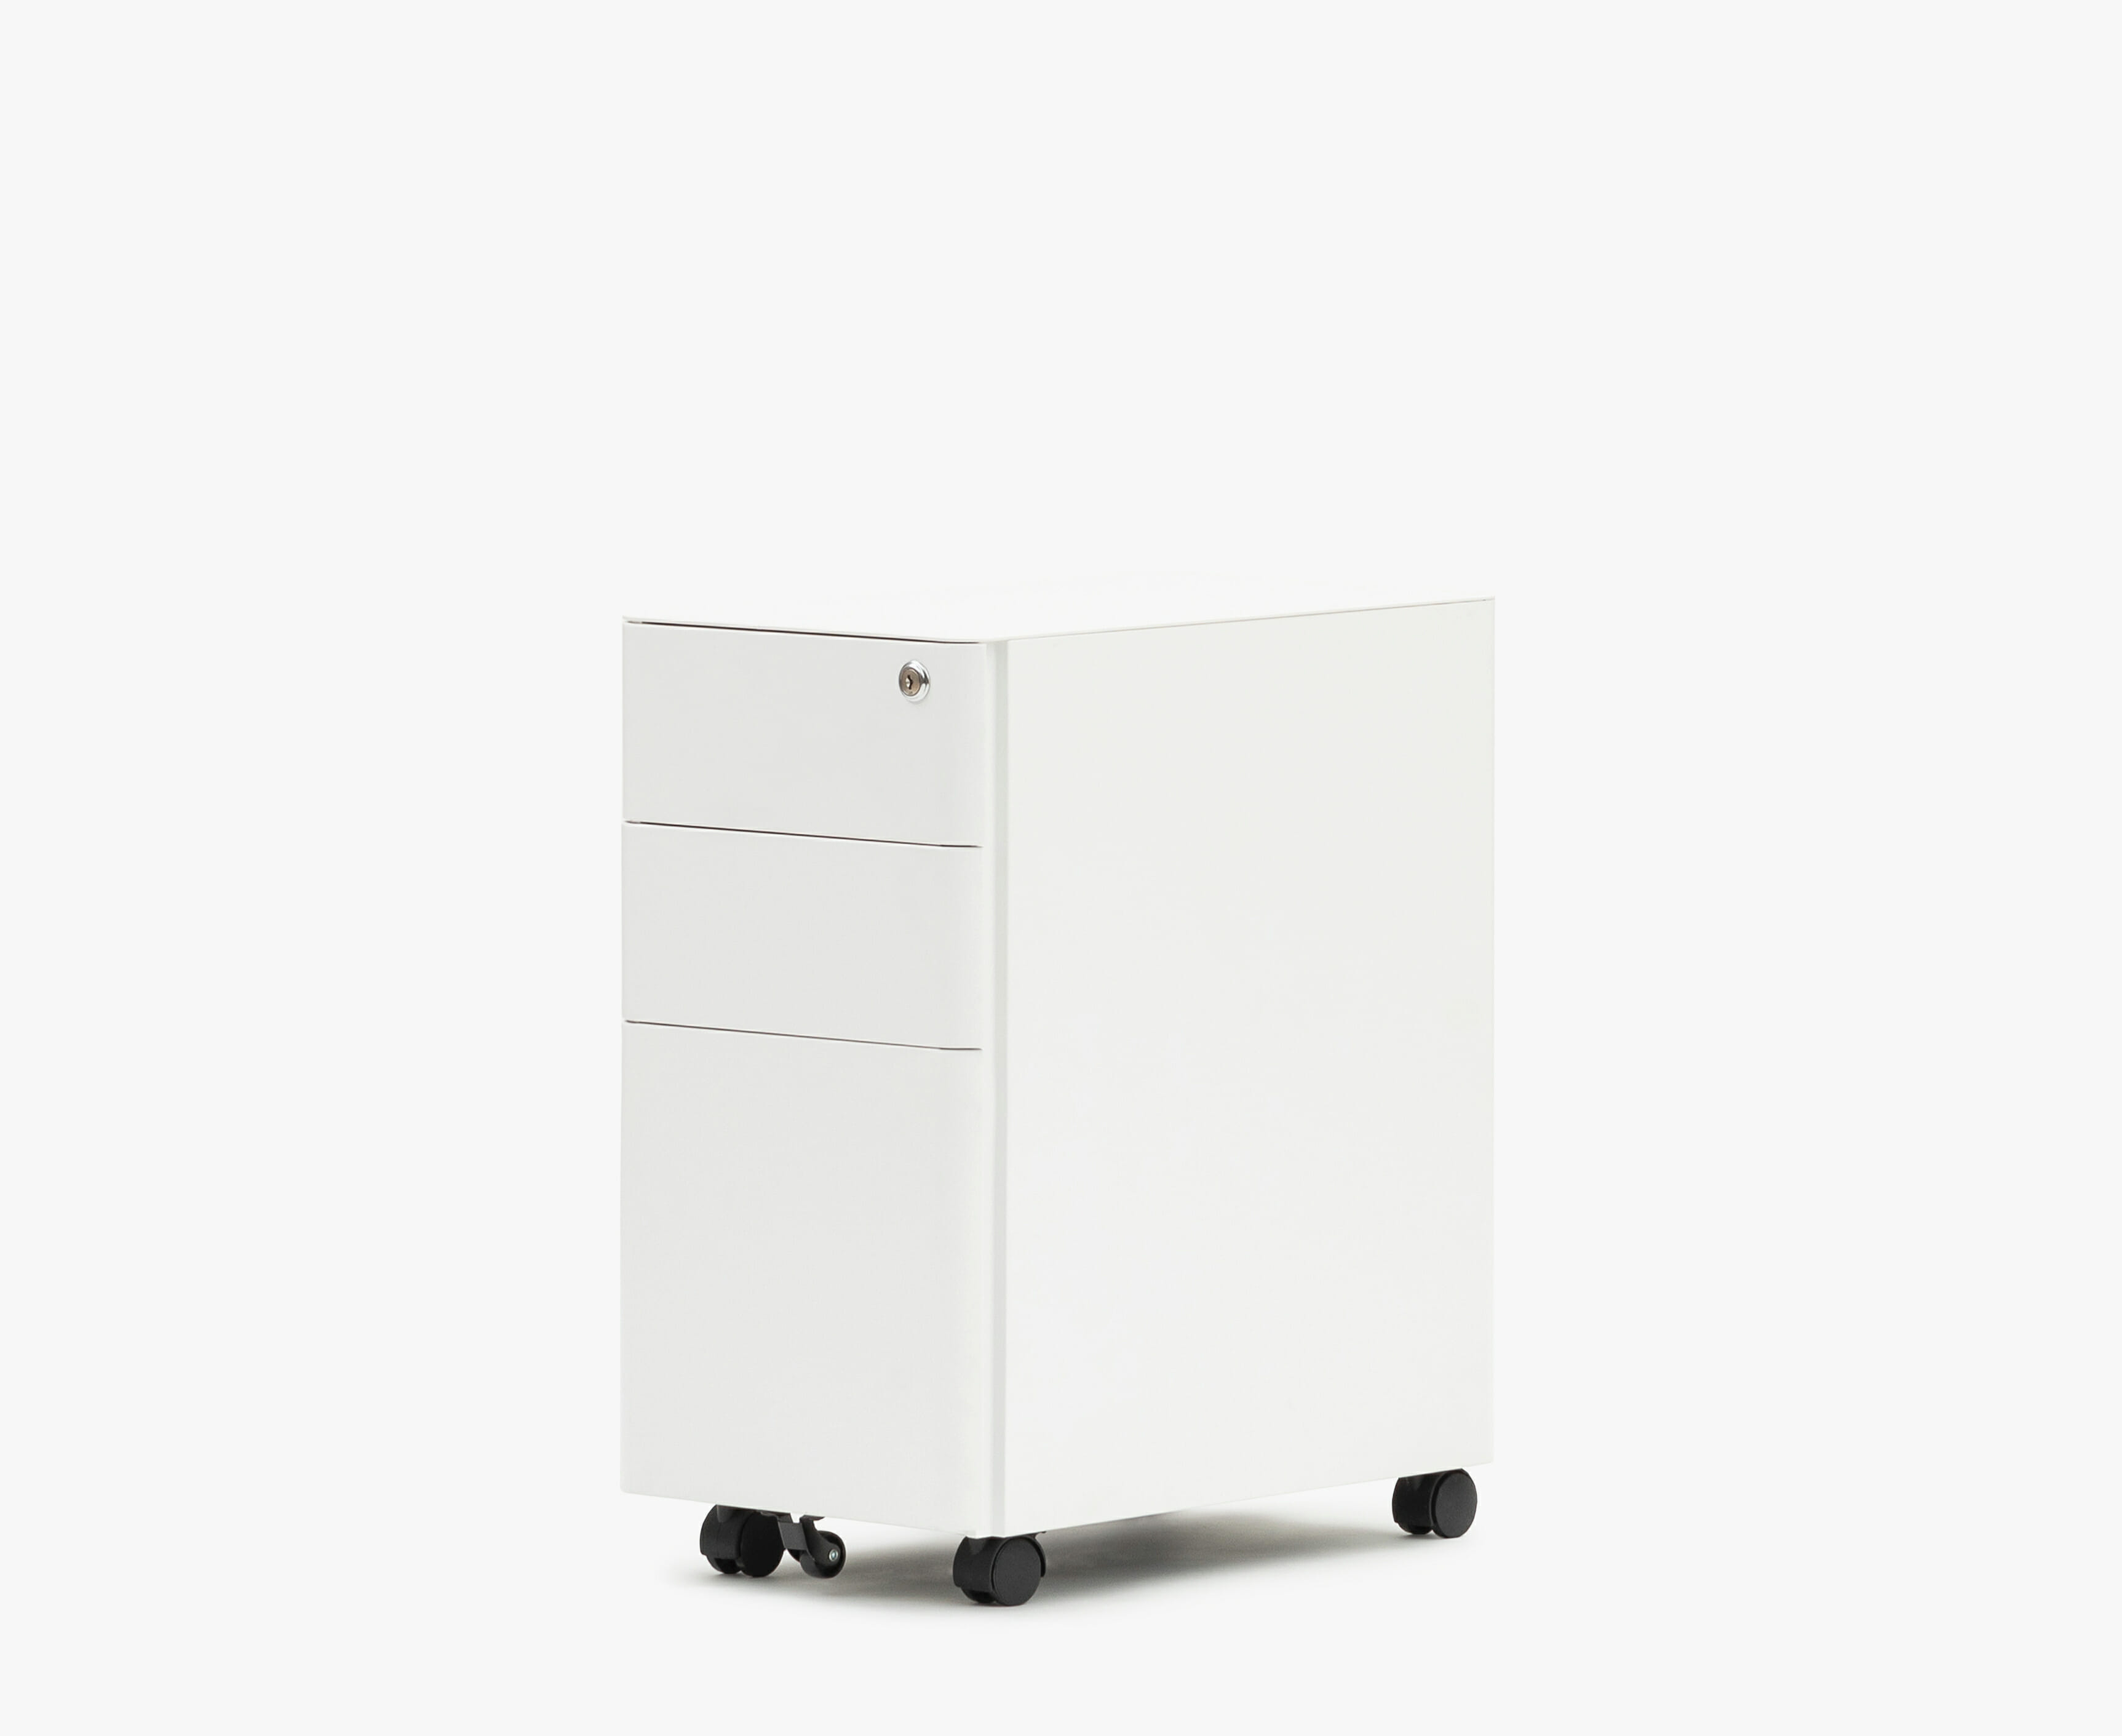 The Linea filing cabinet